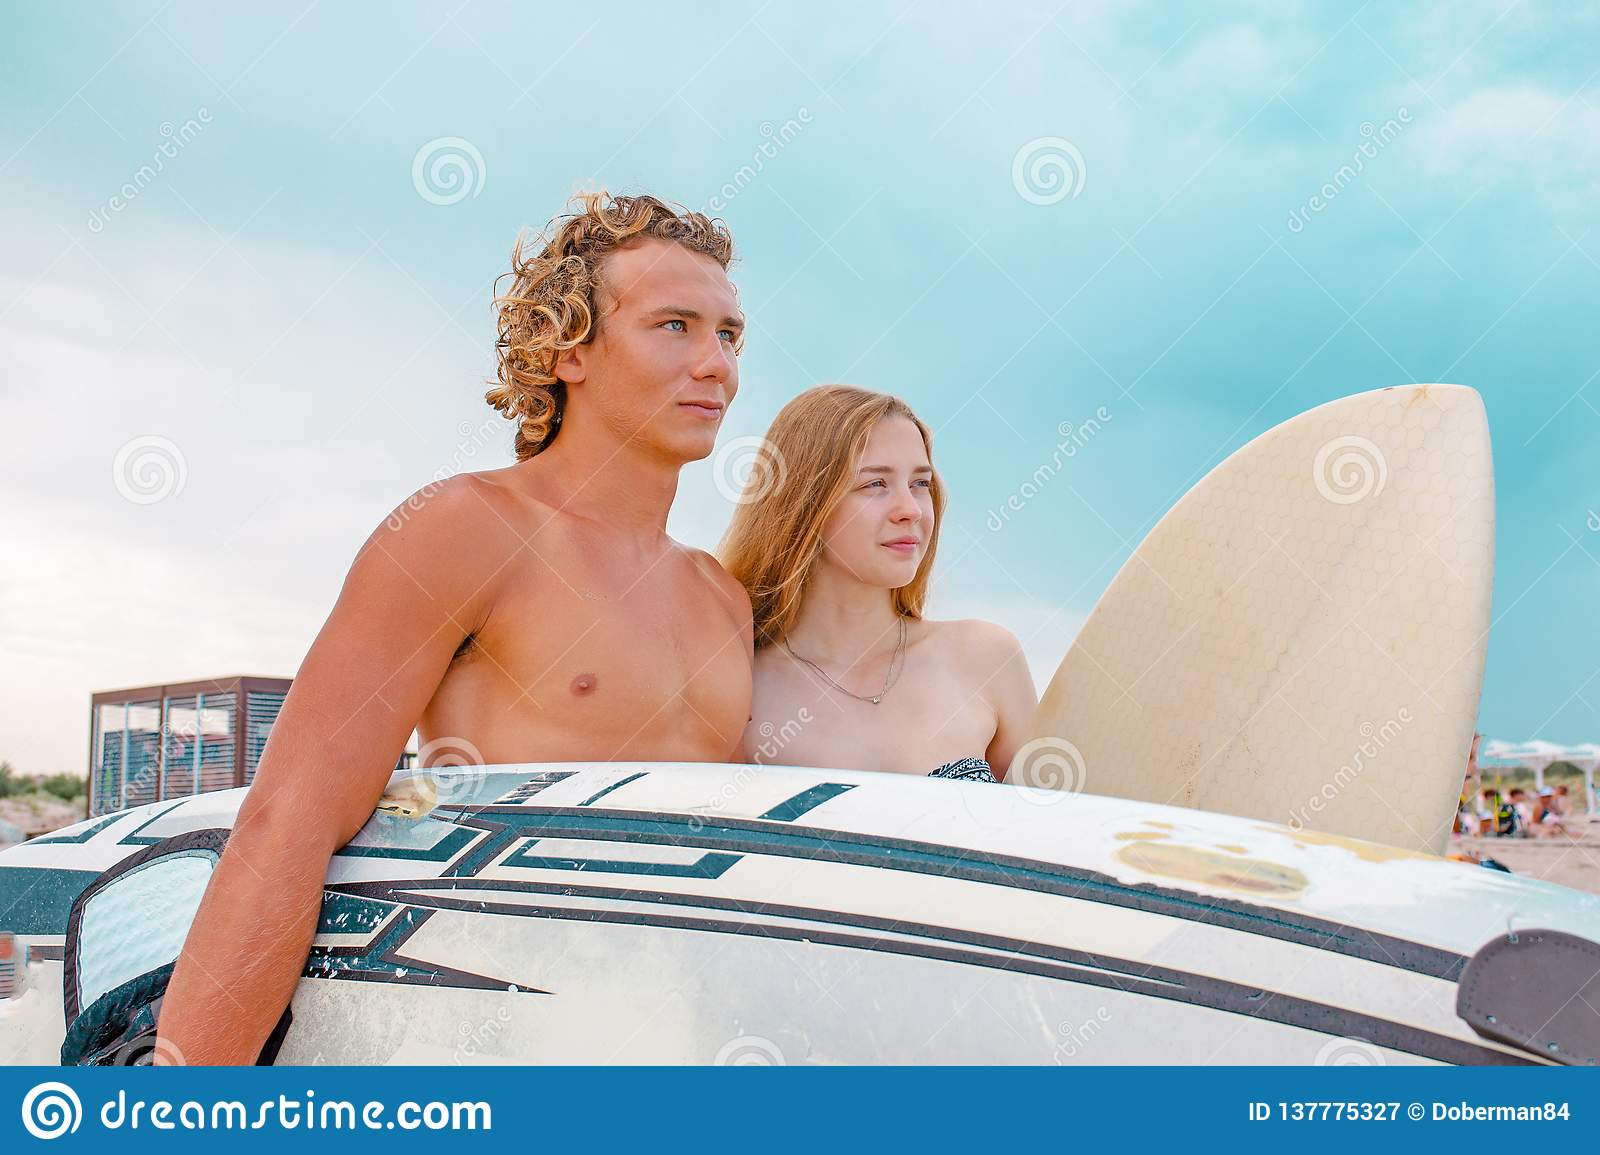 Surfers at the beach- Smiling couple of surfers walking on the beach and having fun in summer. Extreme sport and